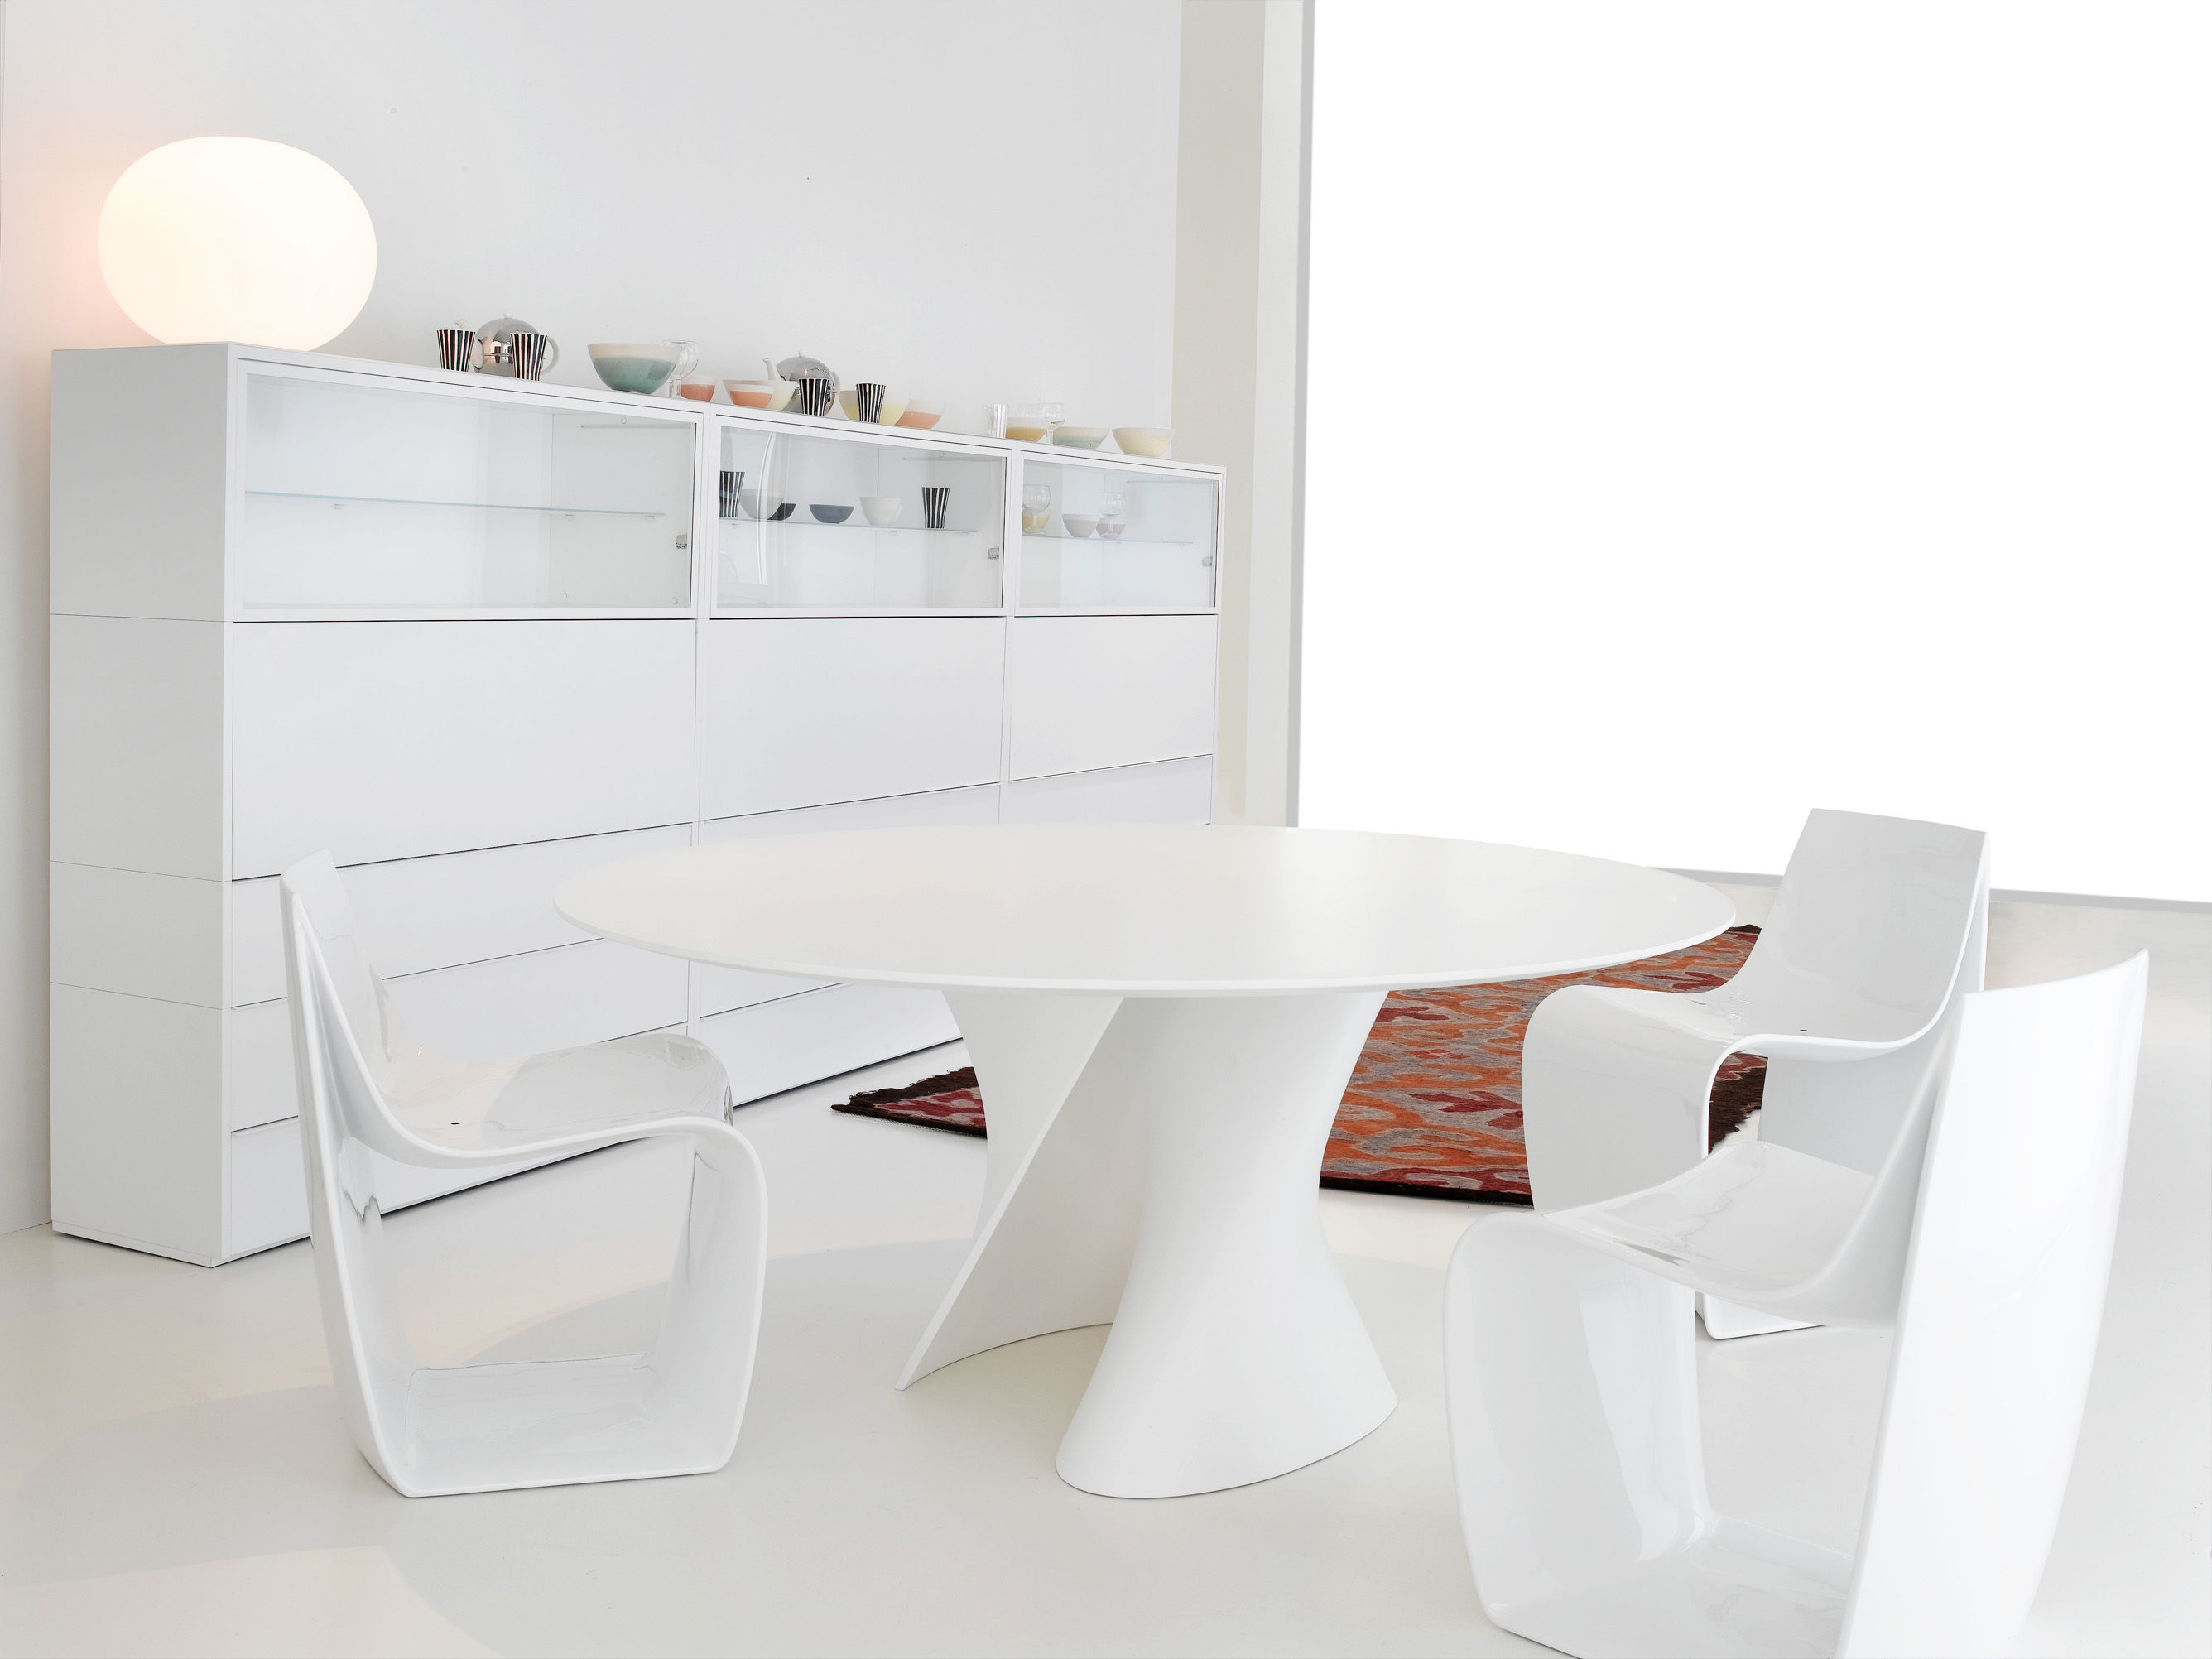 S table oval 210 x 150 cm mdf italia tisch for Tisch design oval